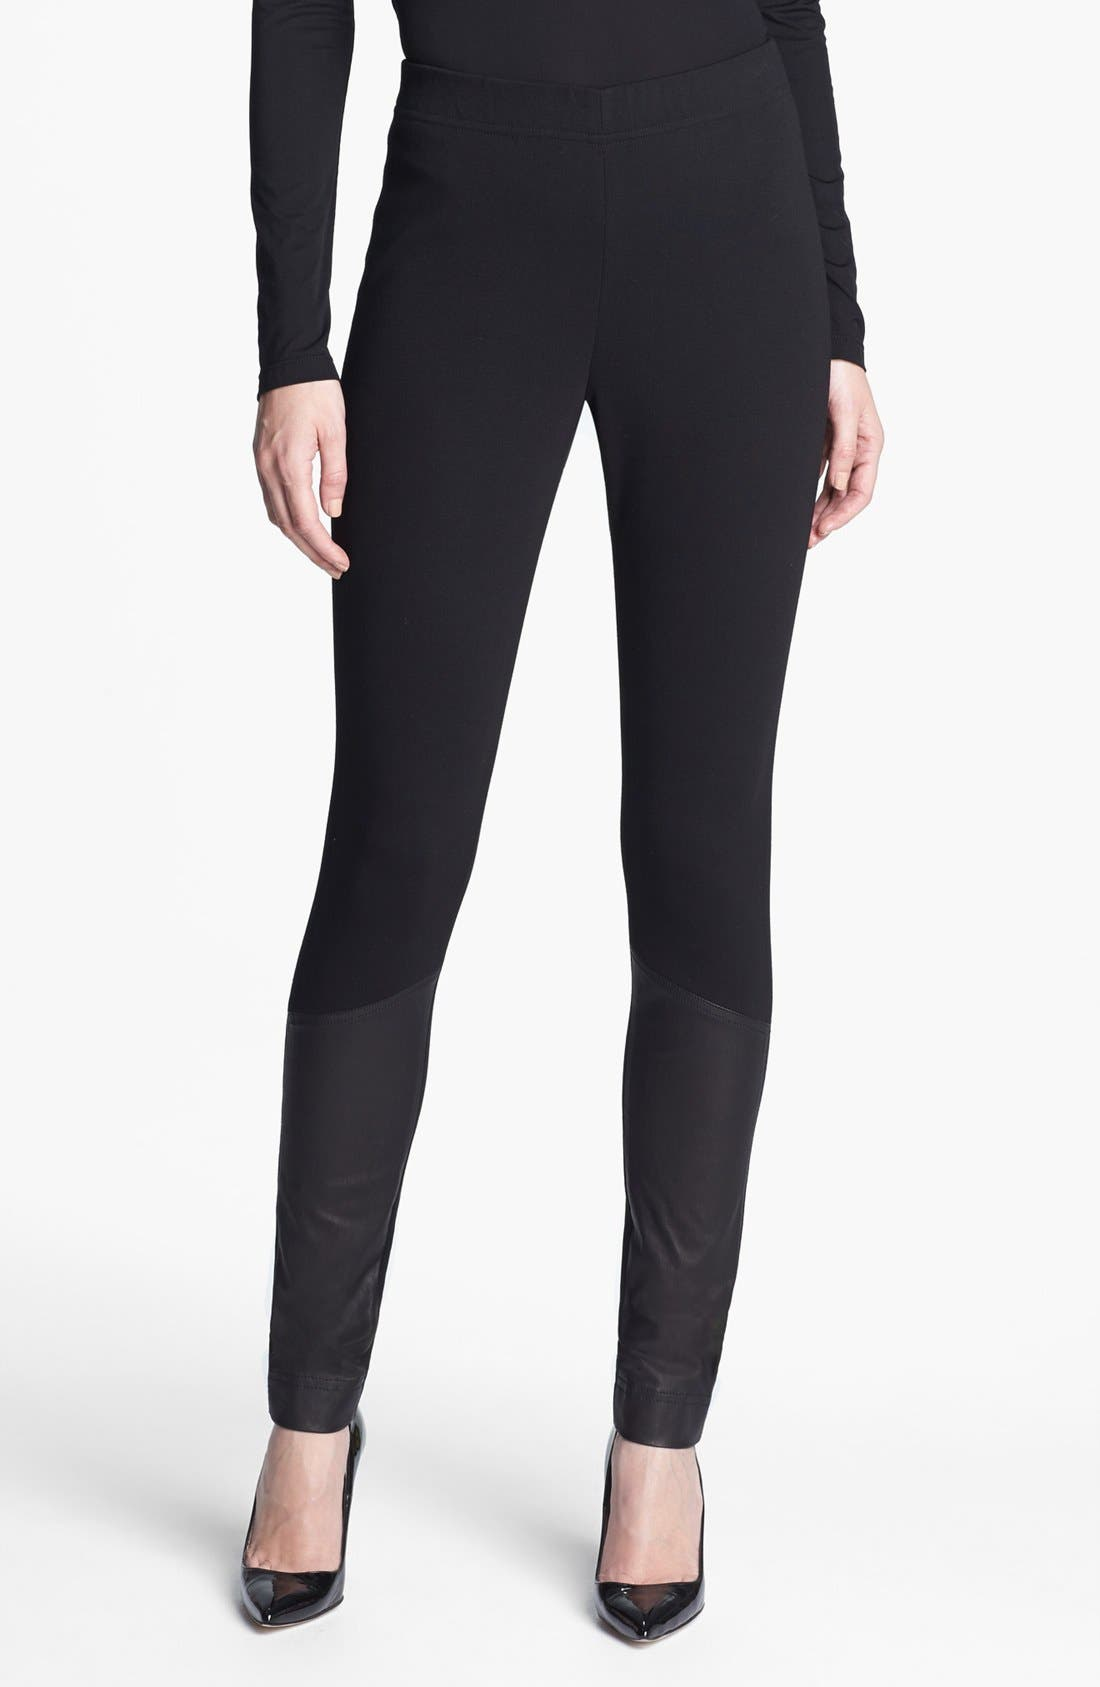 Main Image - St. John Collection Leather Accent Ponte Knit Leggings